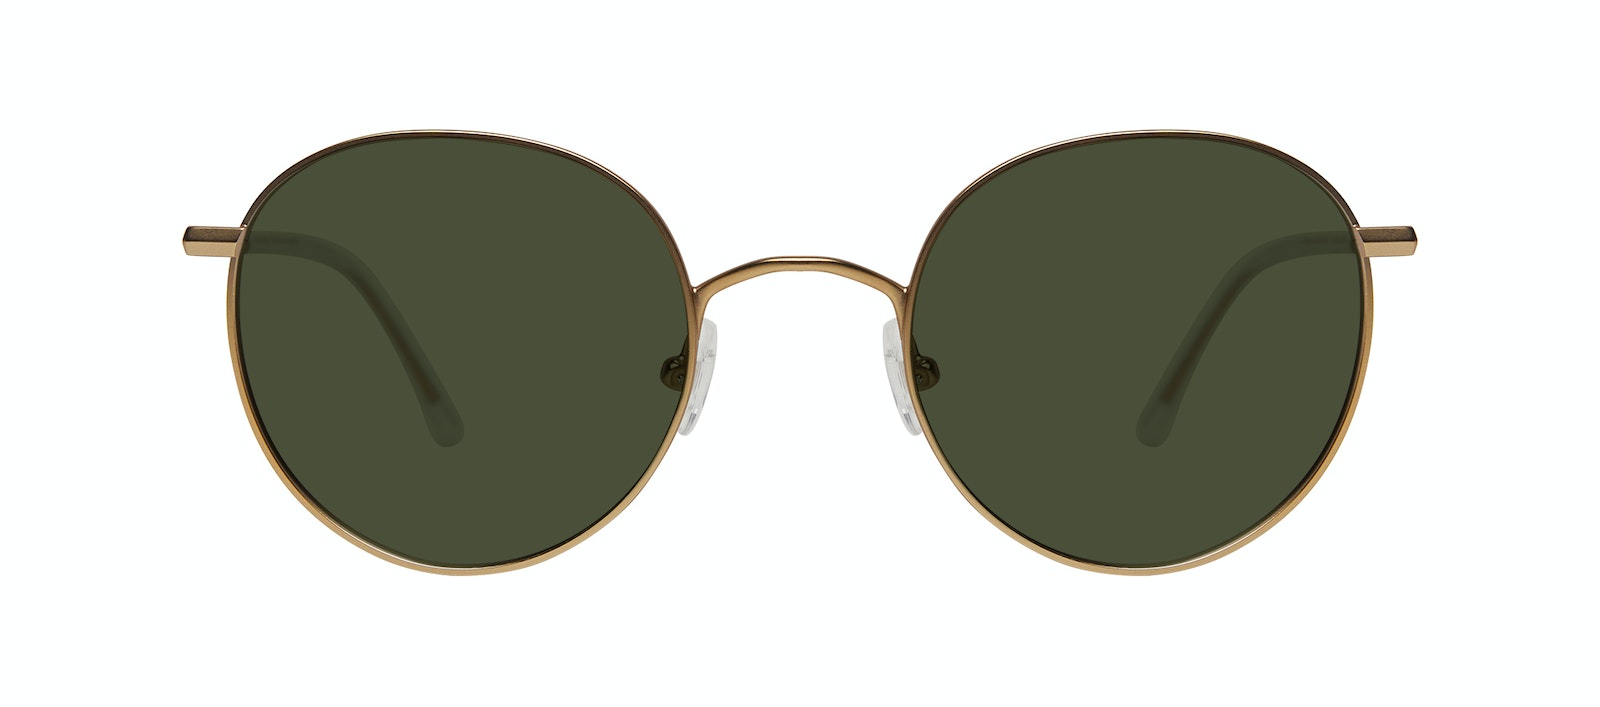 Affordable Fashion Glasses Round Sunglasses Women Finesse Matte Gold Front